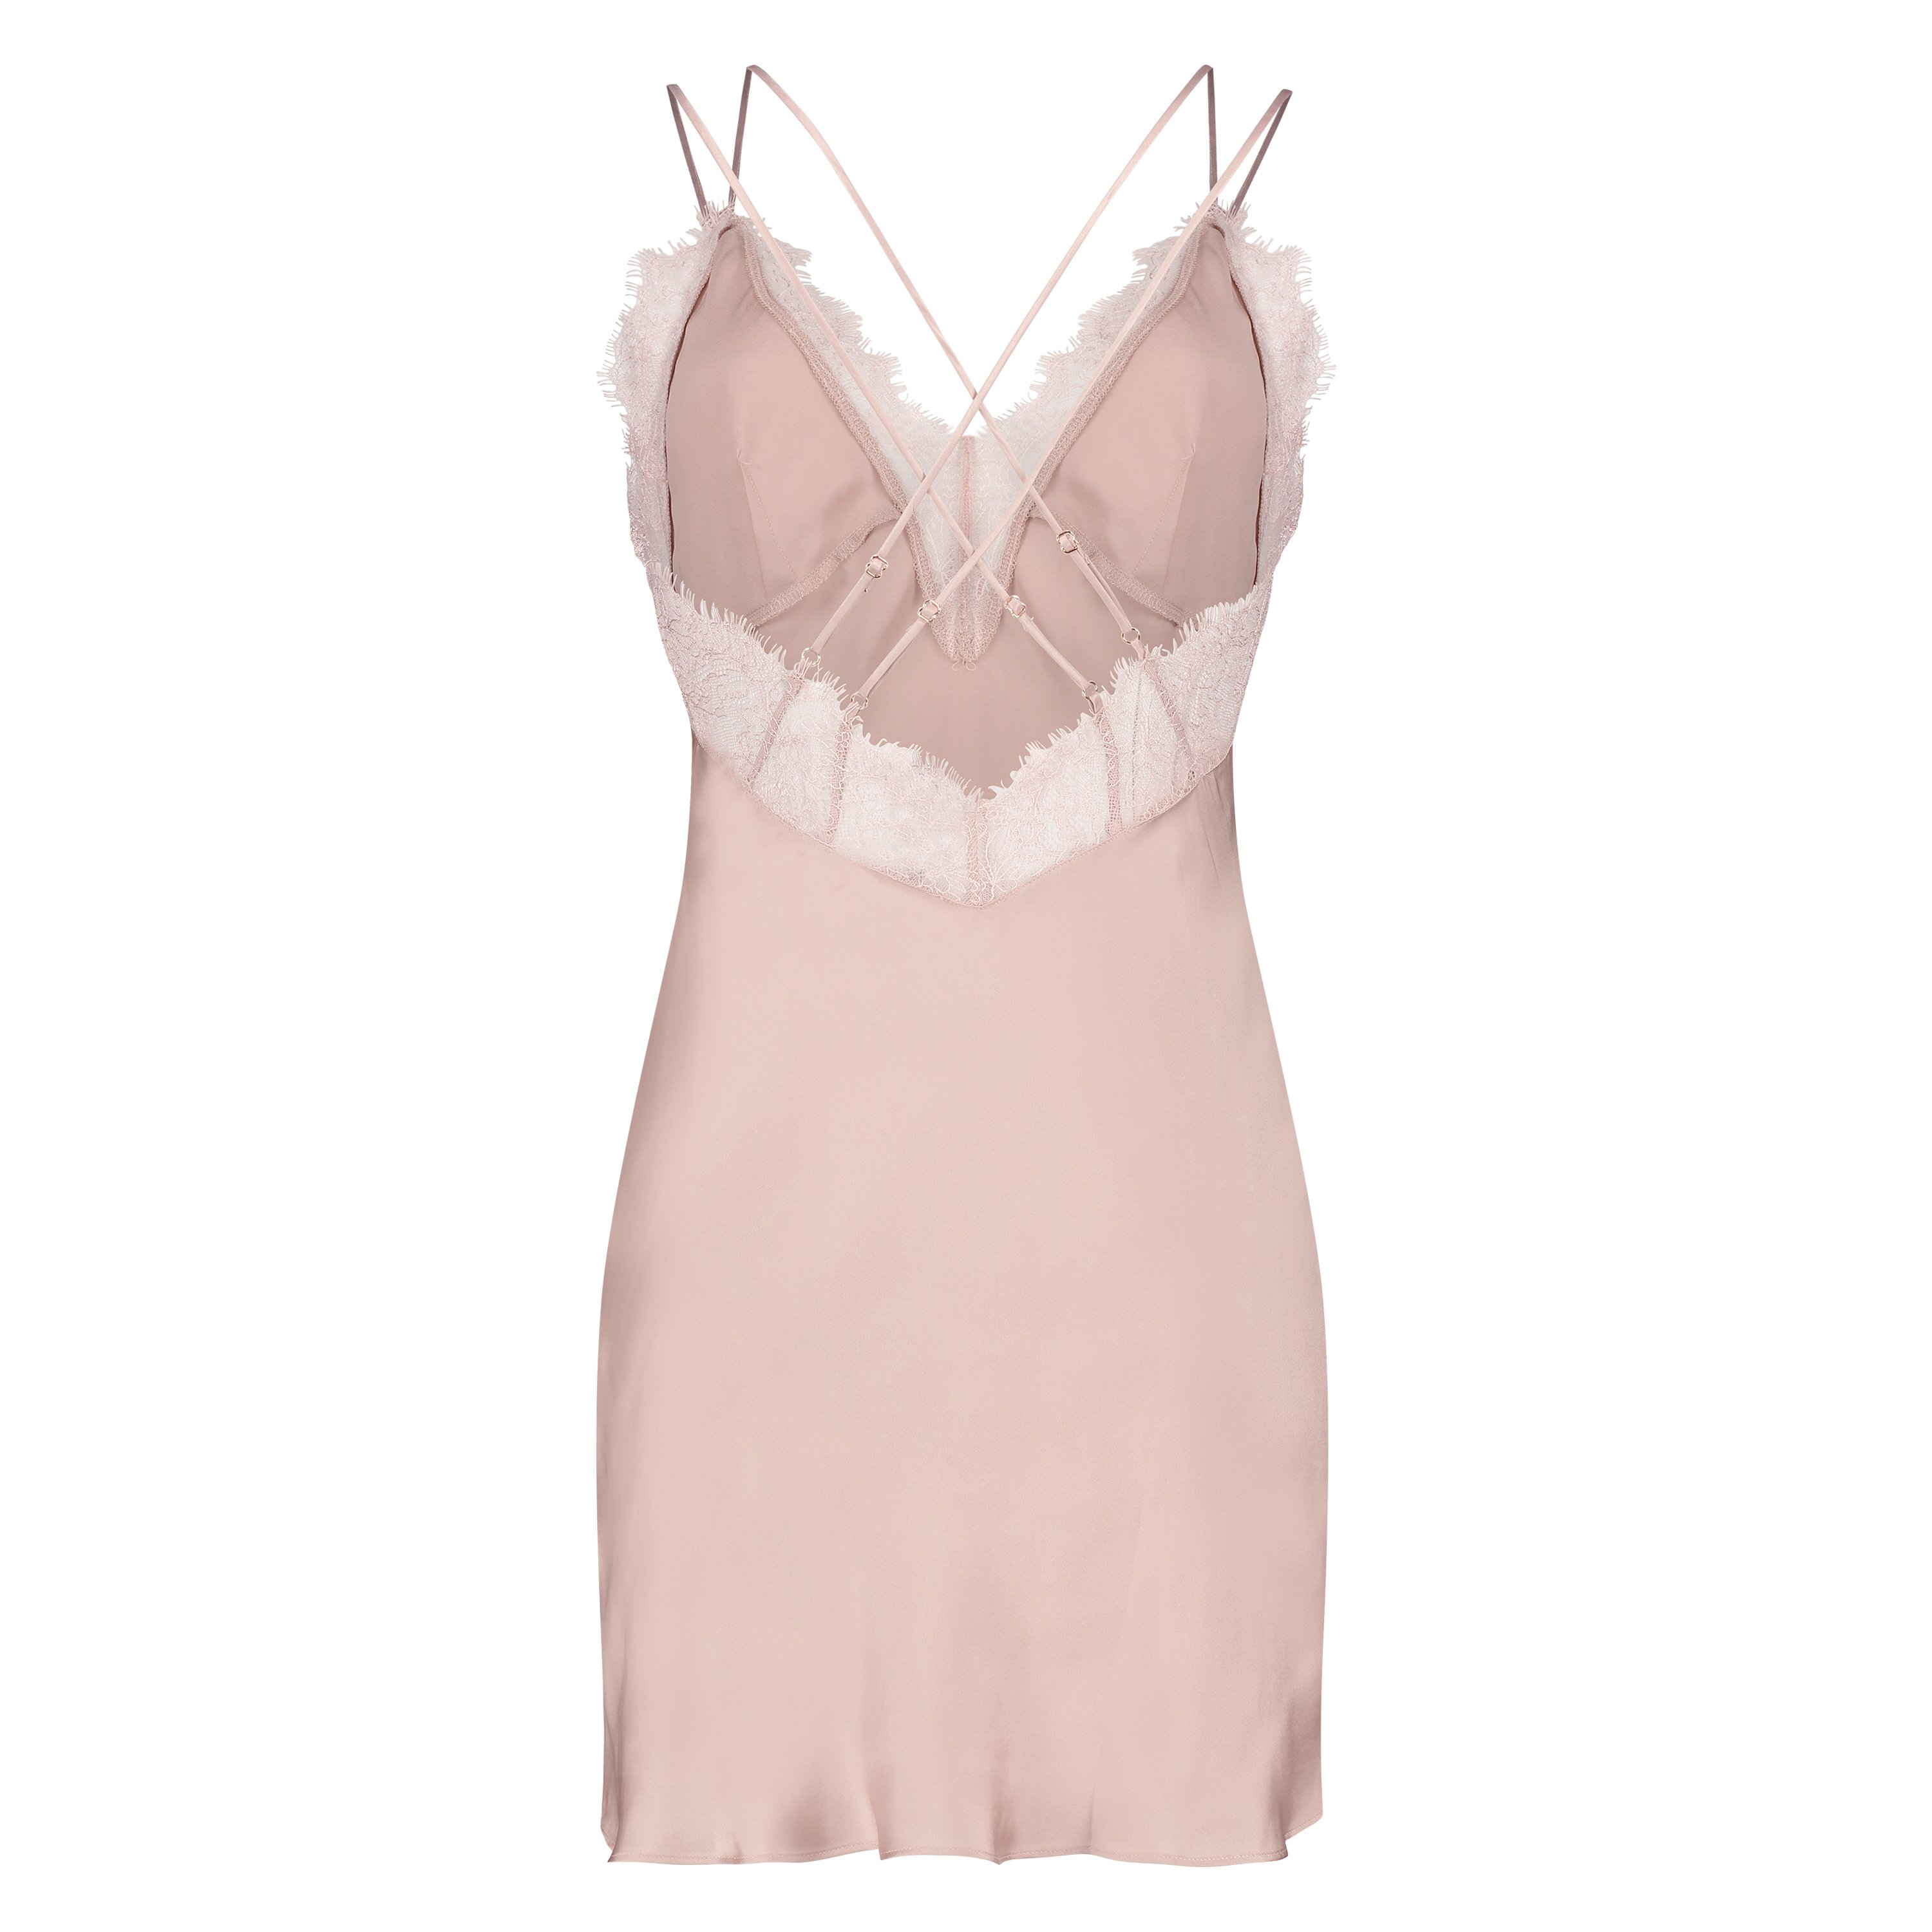 Nuisette Satin Lily, Rose, main